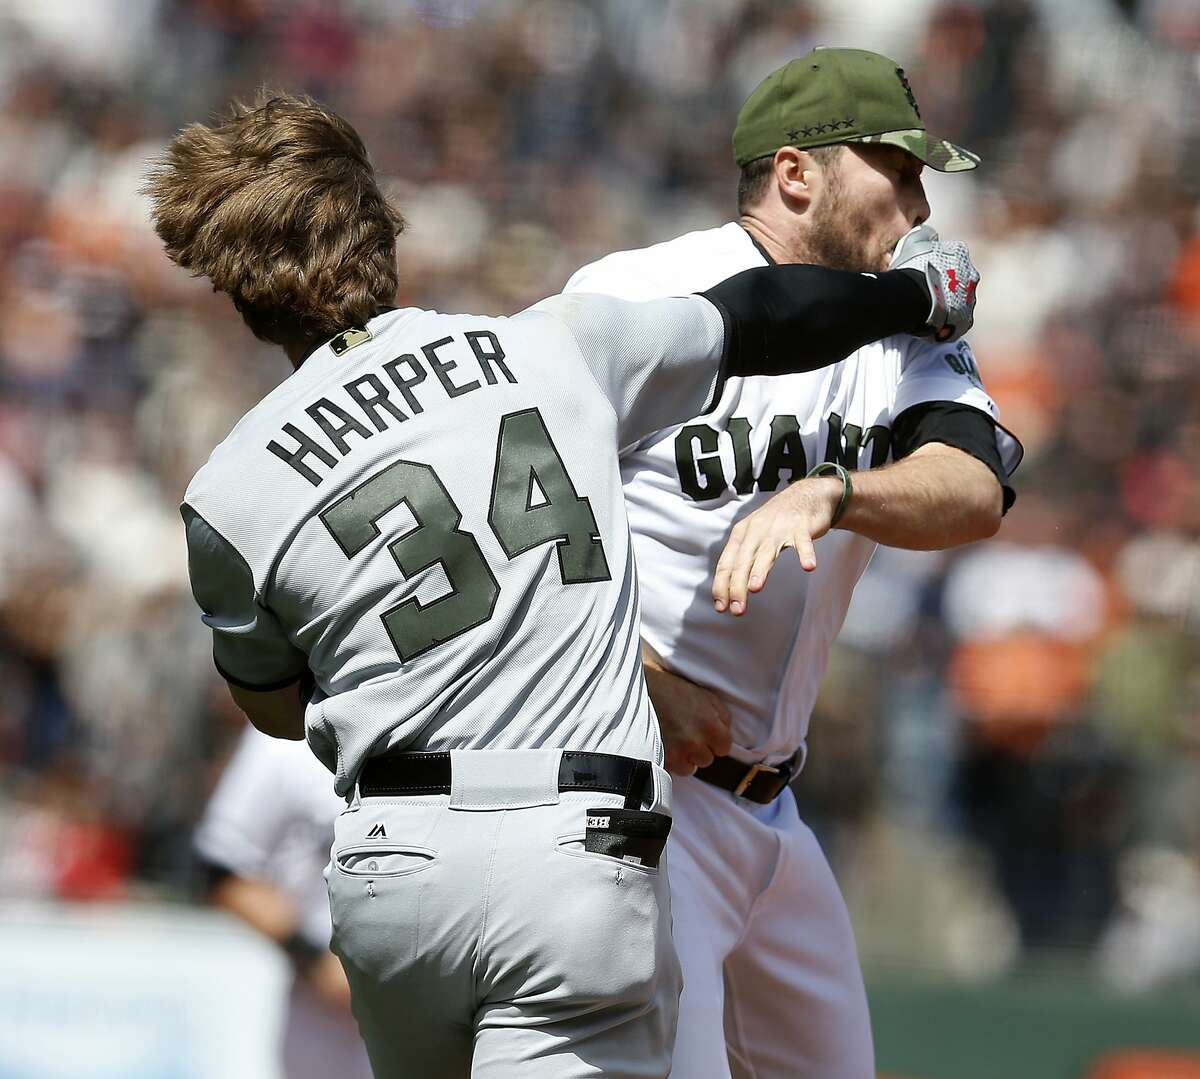 San Francisco Giants pitcher Hunter Strickland is punched by Washington Nationals' Bryce Harper (34) during the eighth inning on Monday, May 29, 2017, in San Francisco, Calif. Harper was hit by a pitch from Strickland, starting a fight between the two teams. (Aric Crabb/Bay Area News Group/TNS)